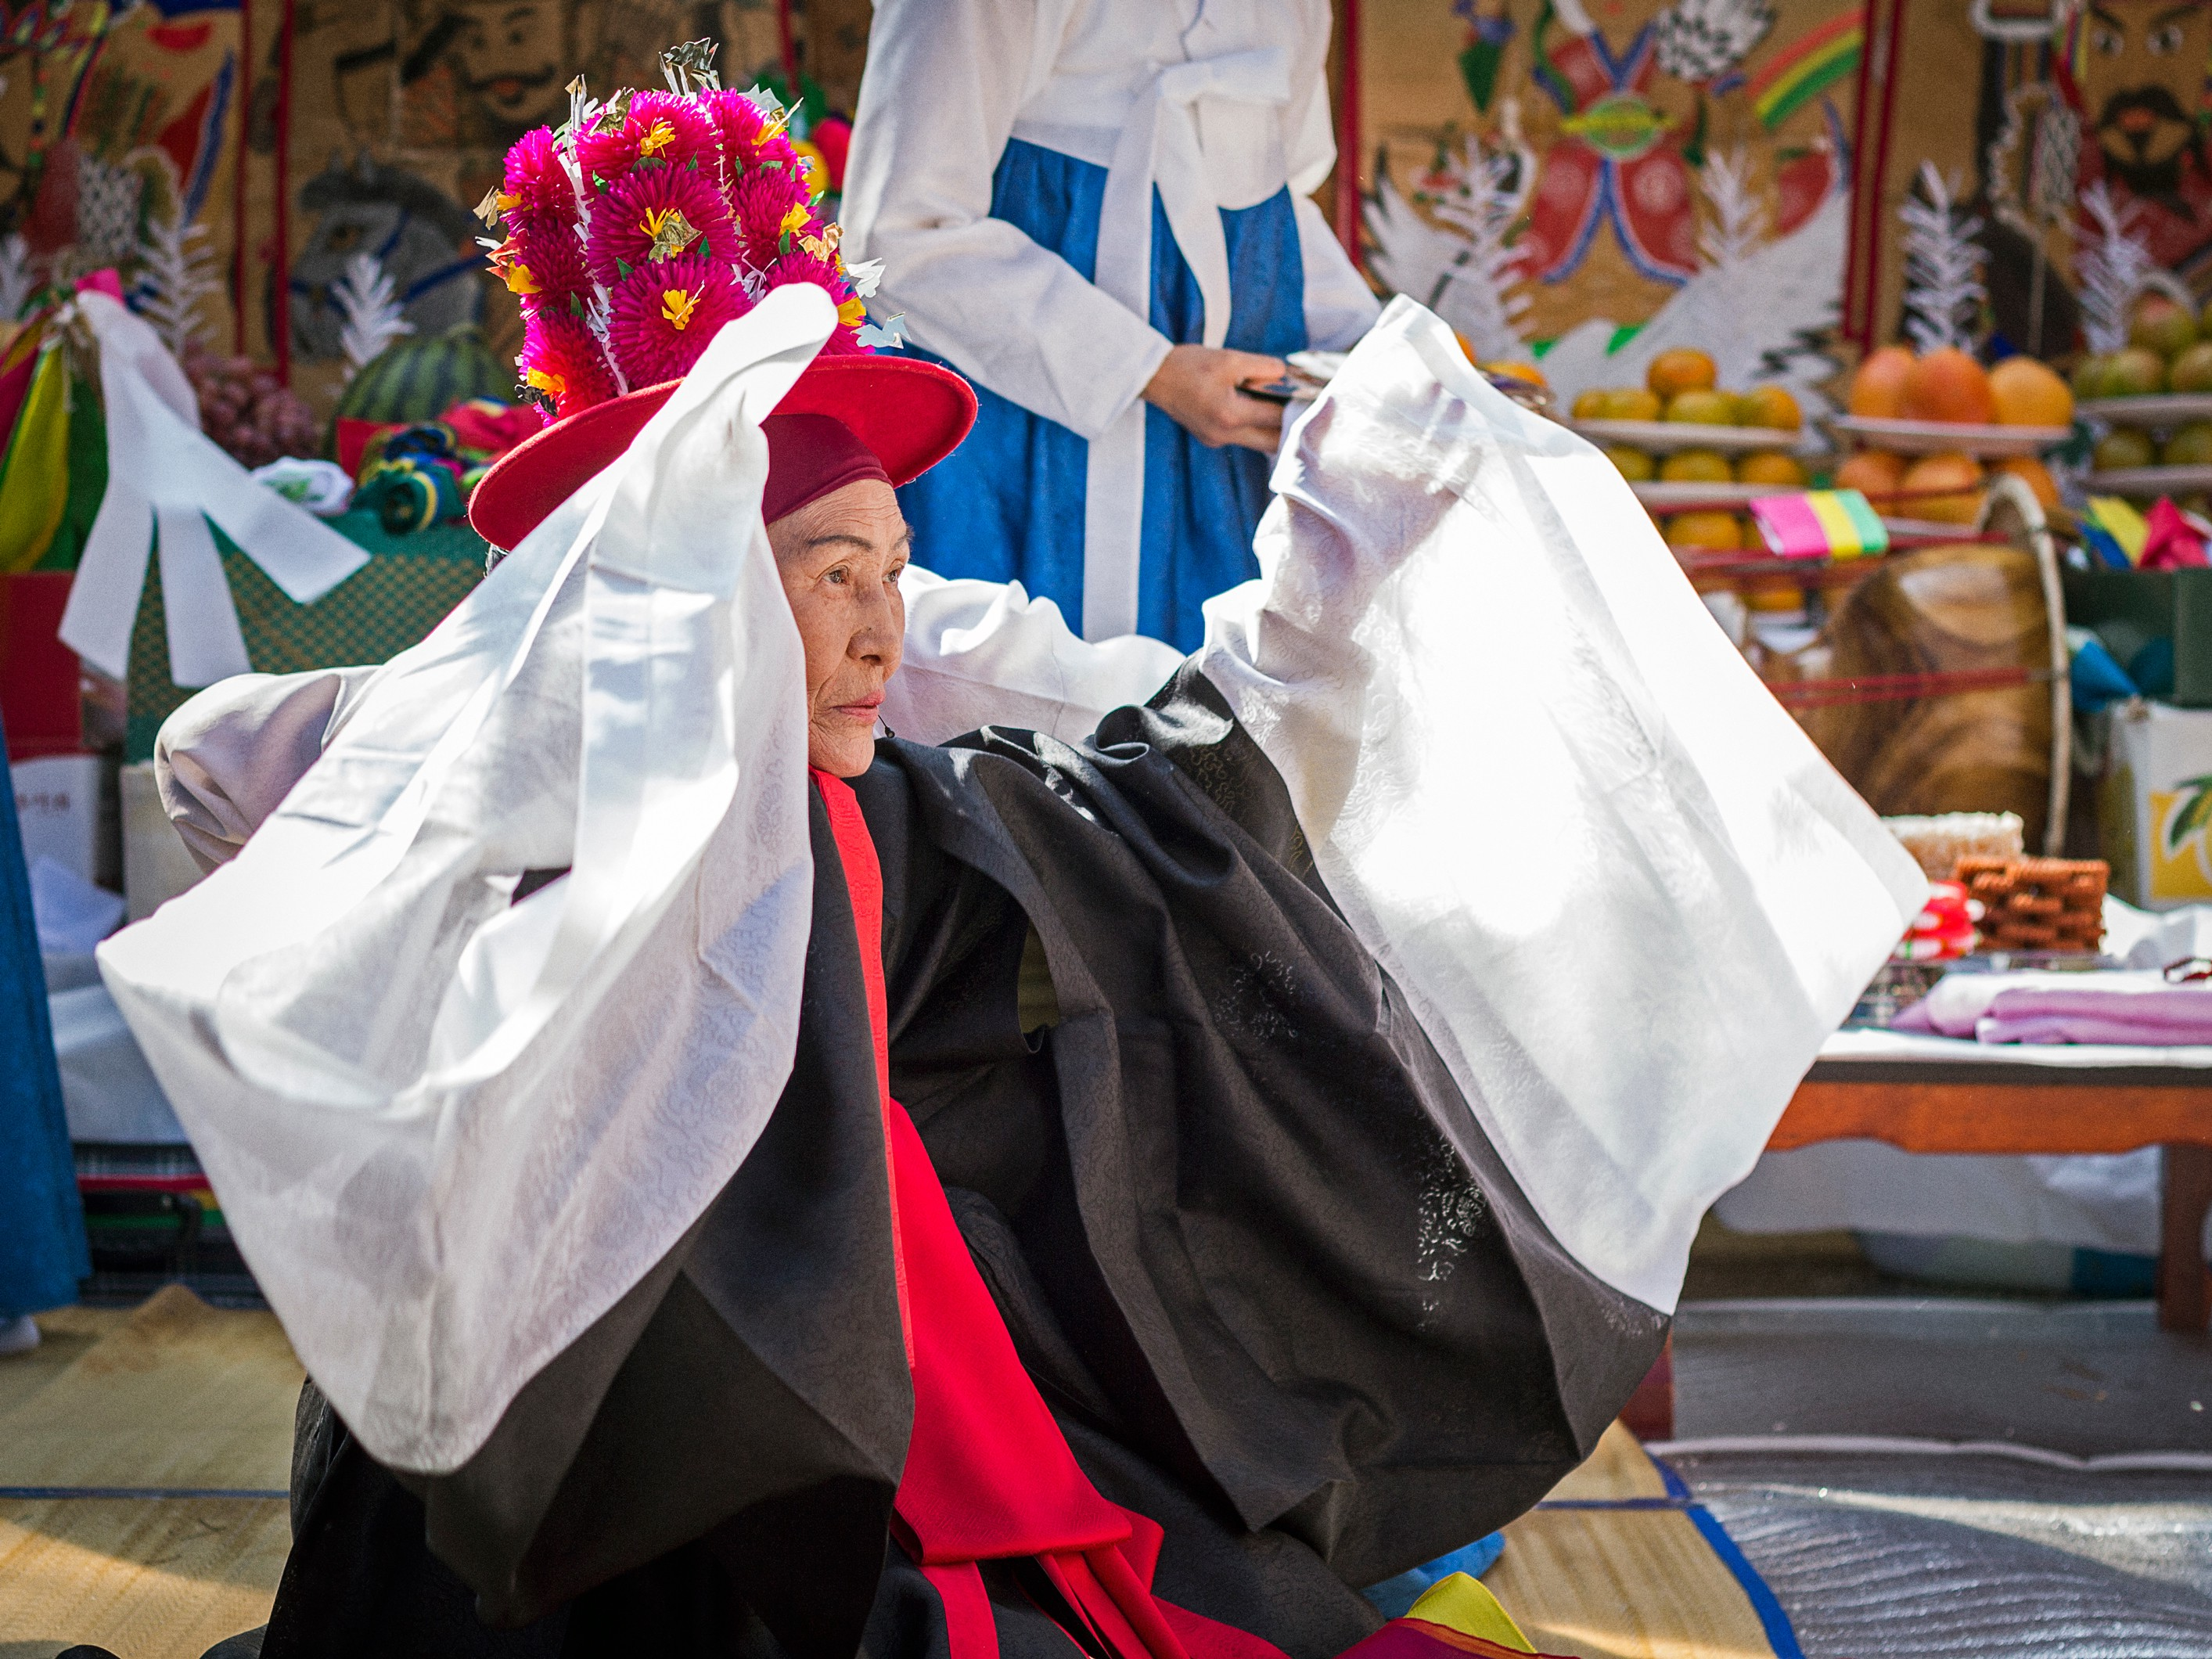 In 21st-century Korea, shamanism is not only thriving — but evolving